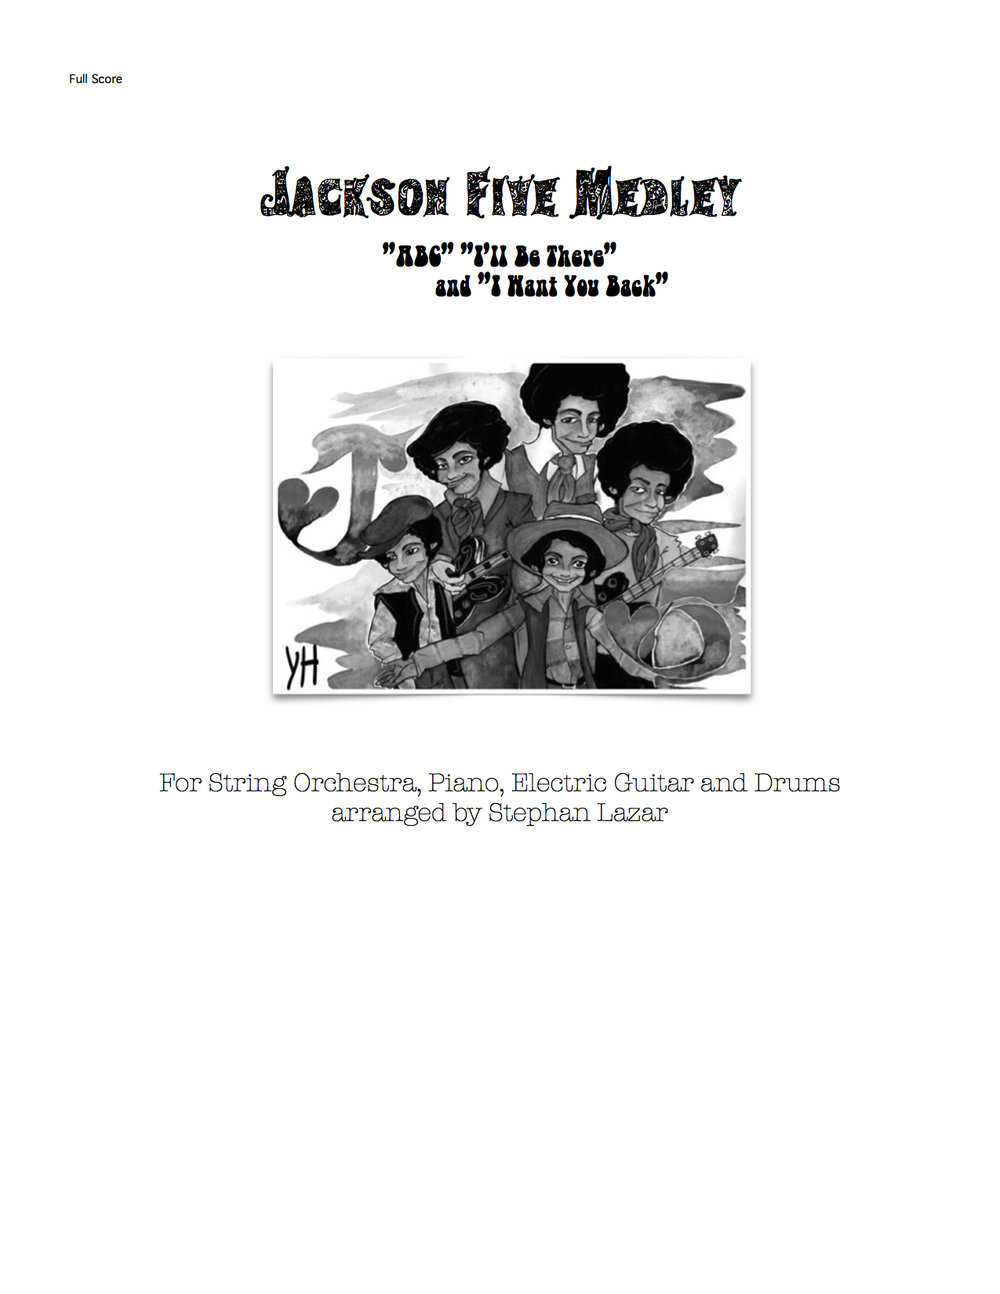 Jackson 5 Medley Score for website.jpg